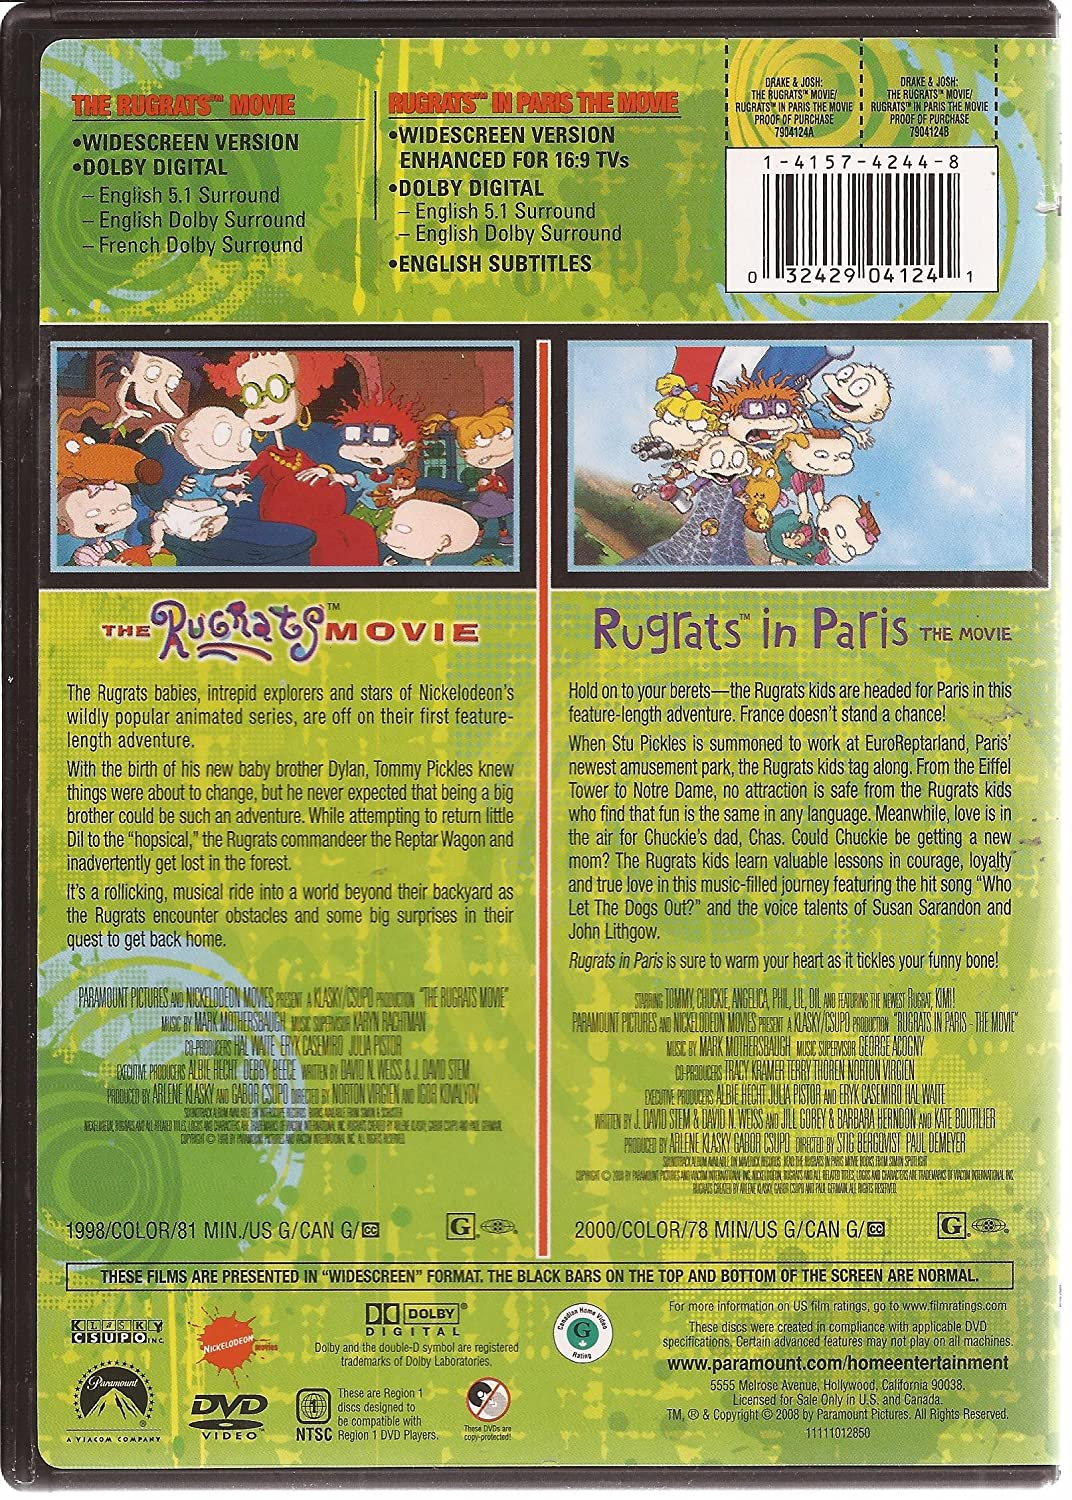 Amazon.com: The Rugrats Movie & Rugrats in Paris the Movie ...